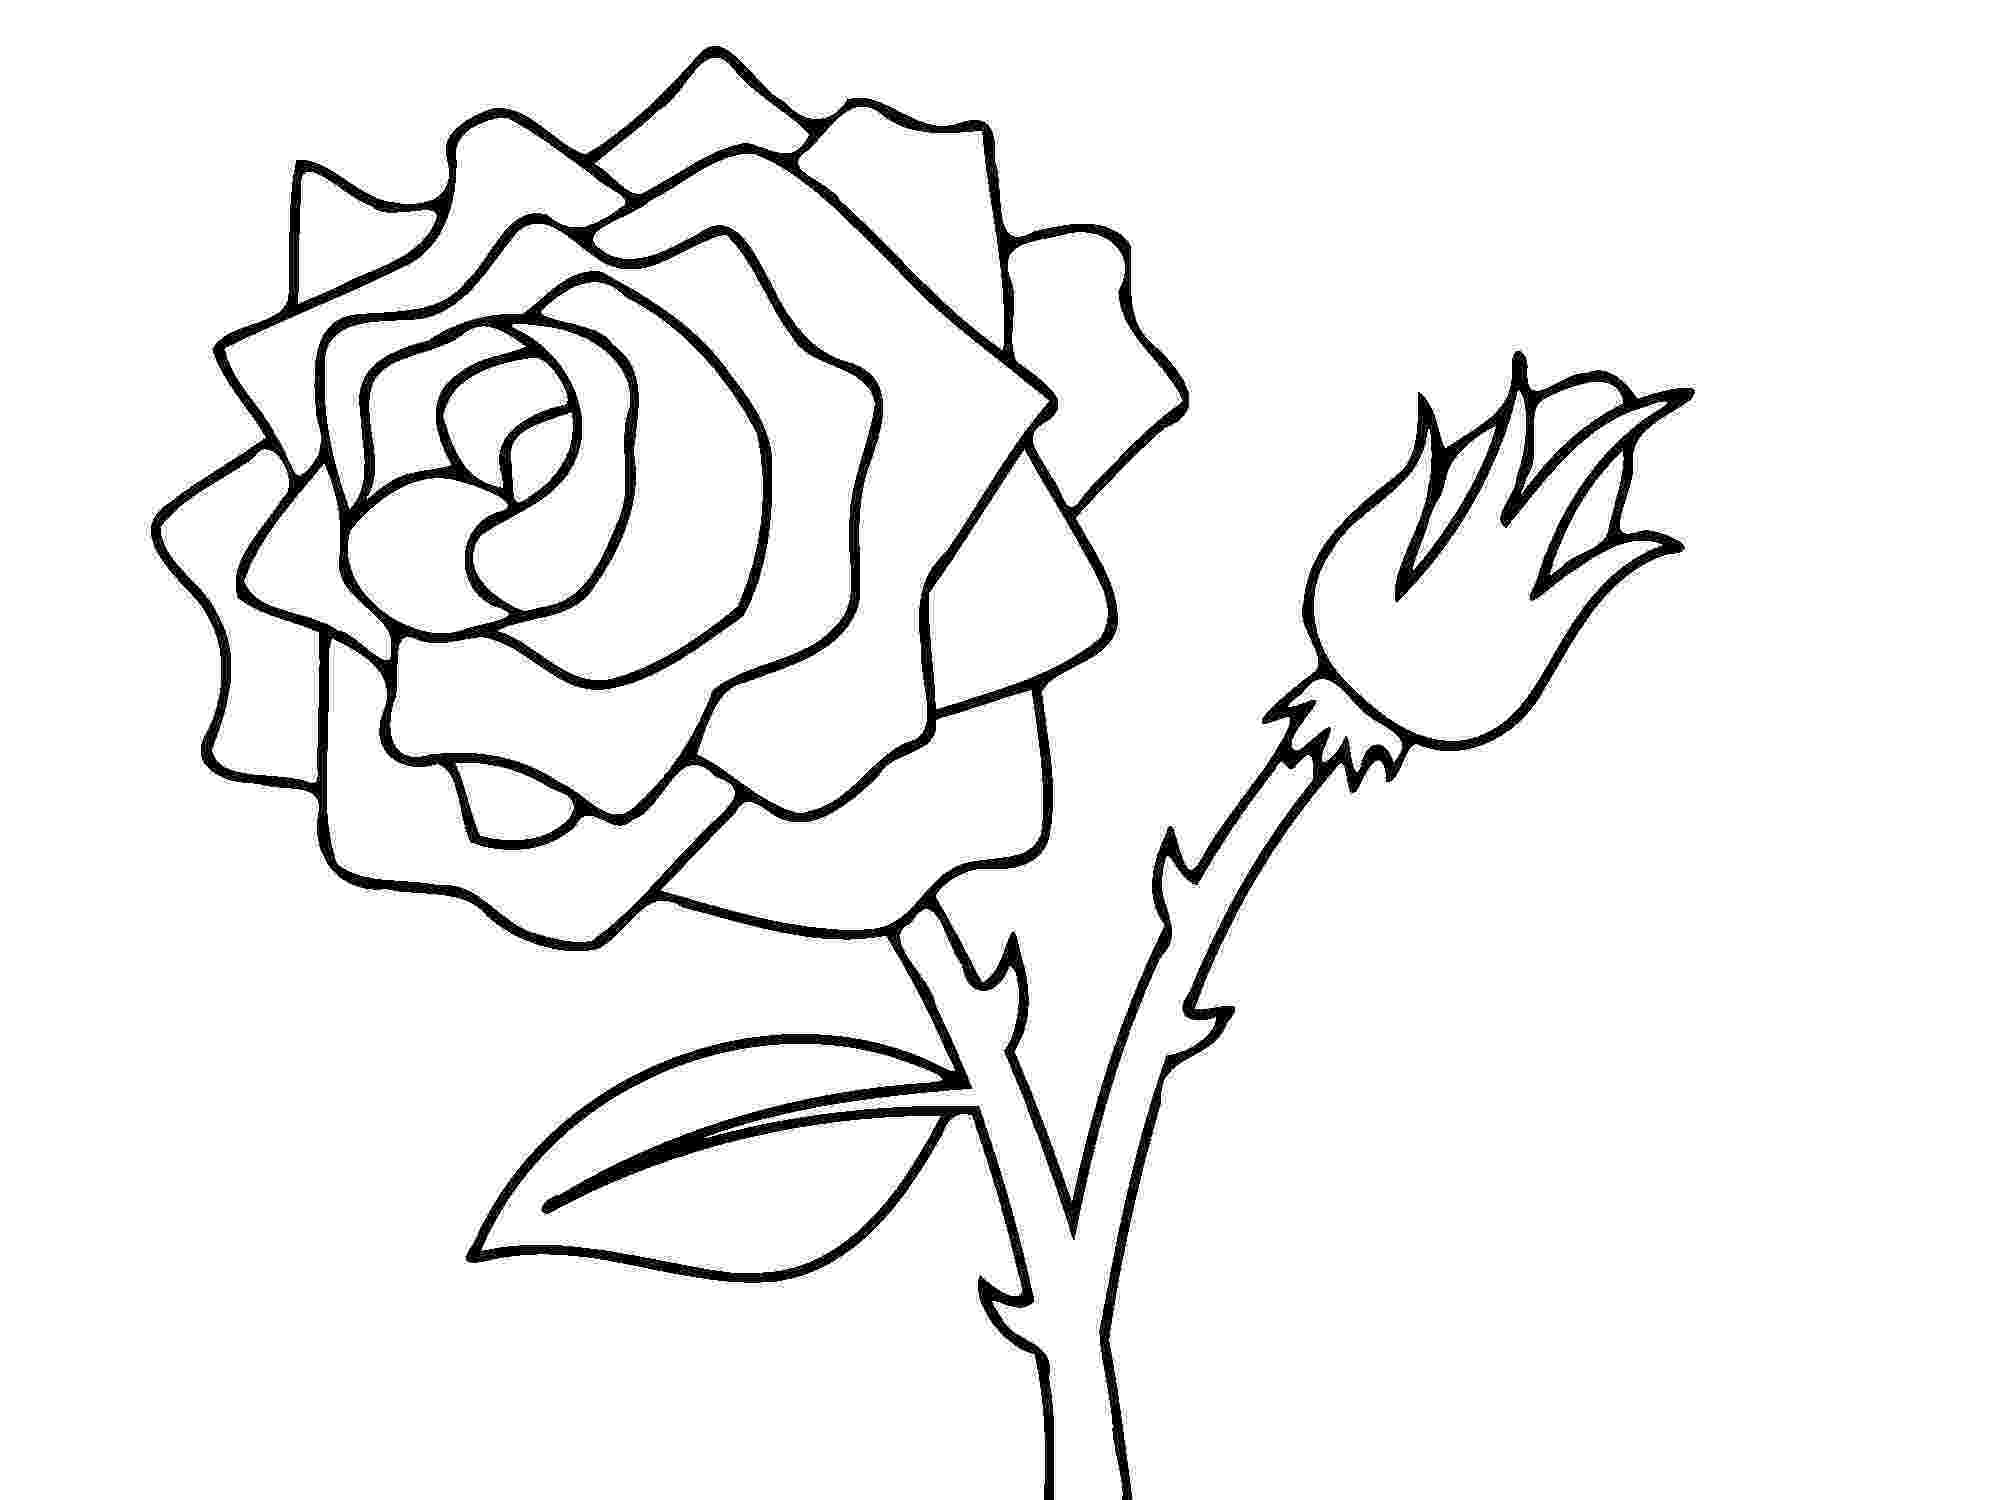 rose flower coloring pages free printable roses coloring pages for kids pages rose flower coloring